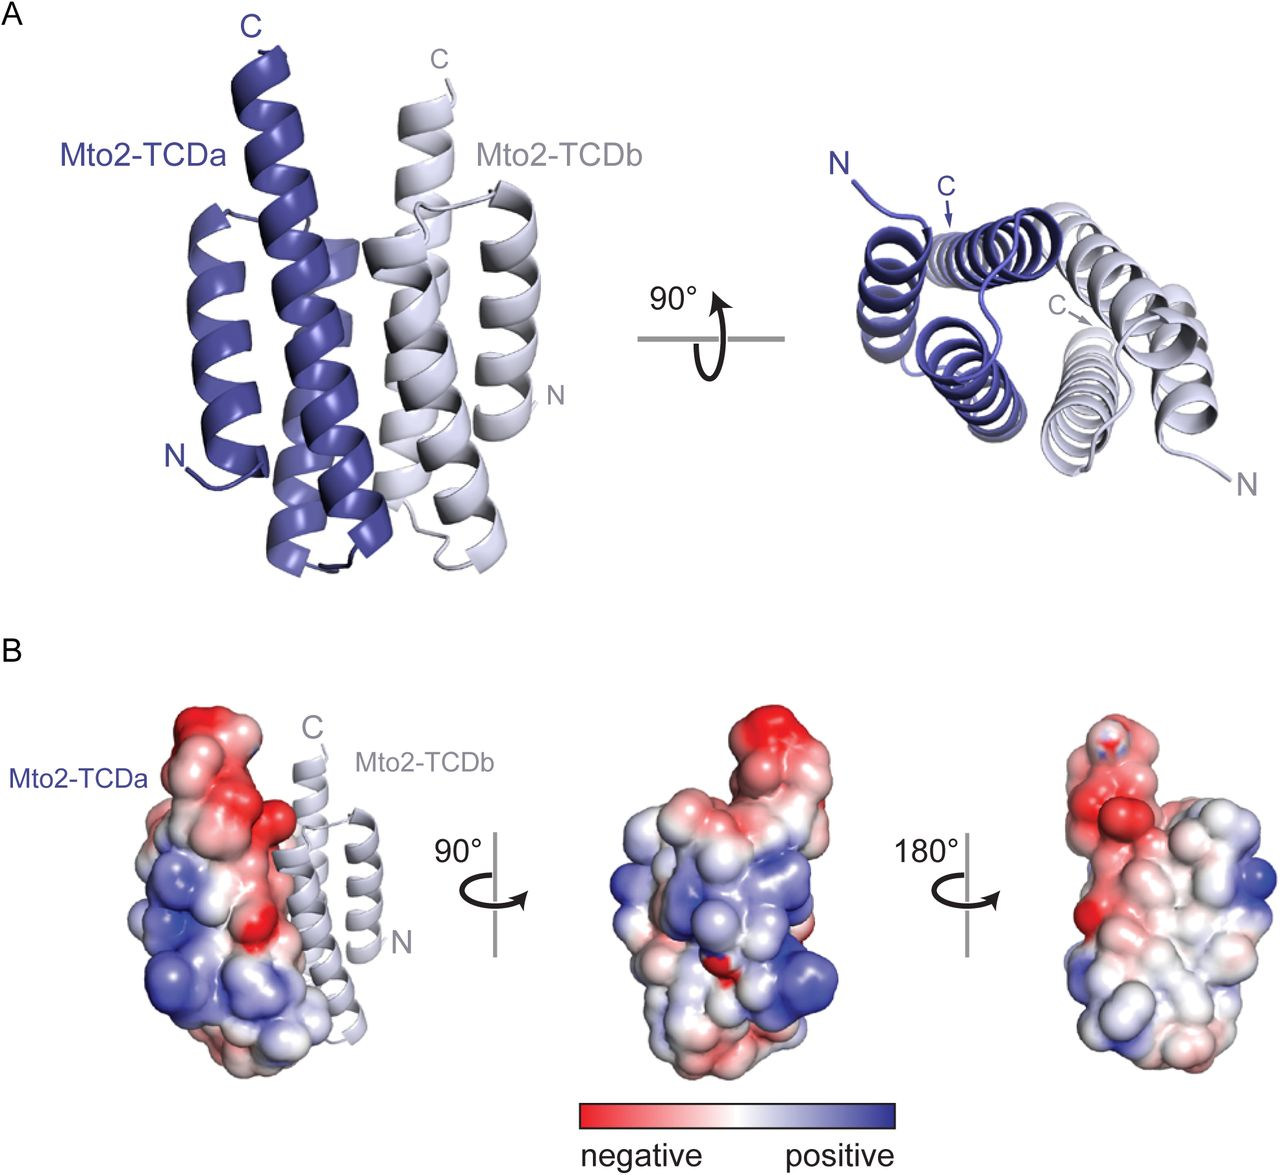 X-ray crystal structure of the Mto2 Twin-Cysteine Domain (TCD). (A) Ribbon diagram of the TCD dimer. The two monomer chains (TCDa and TCDb) are in different shades of blue. Rotated view shows proximity of the two three-helix bundles. See also Suppl. Figure 3 . (B) Surface-charge representation of the TCD monomer. Left panel includes ribbon diagram of second monomer, to show orientation of the dimer relative to A. Note absence of charged residues at the hydrophobic dimer interface (right panel, white surface).